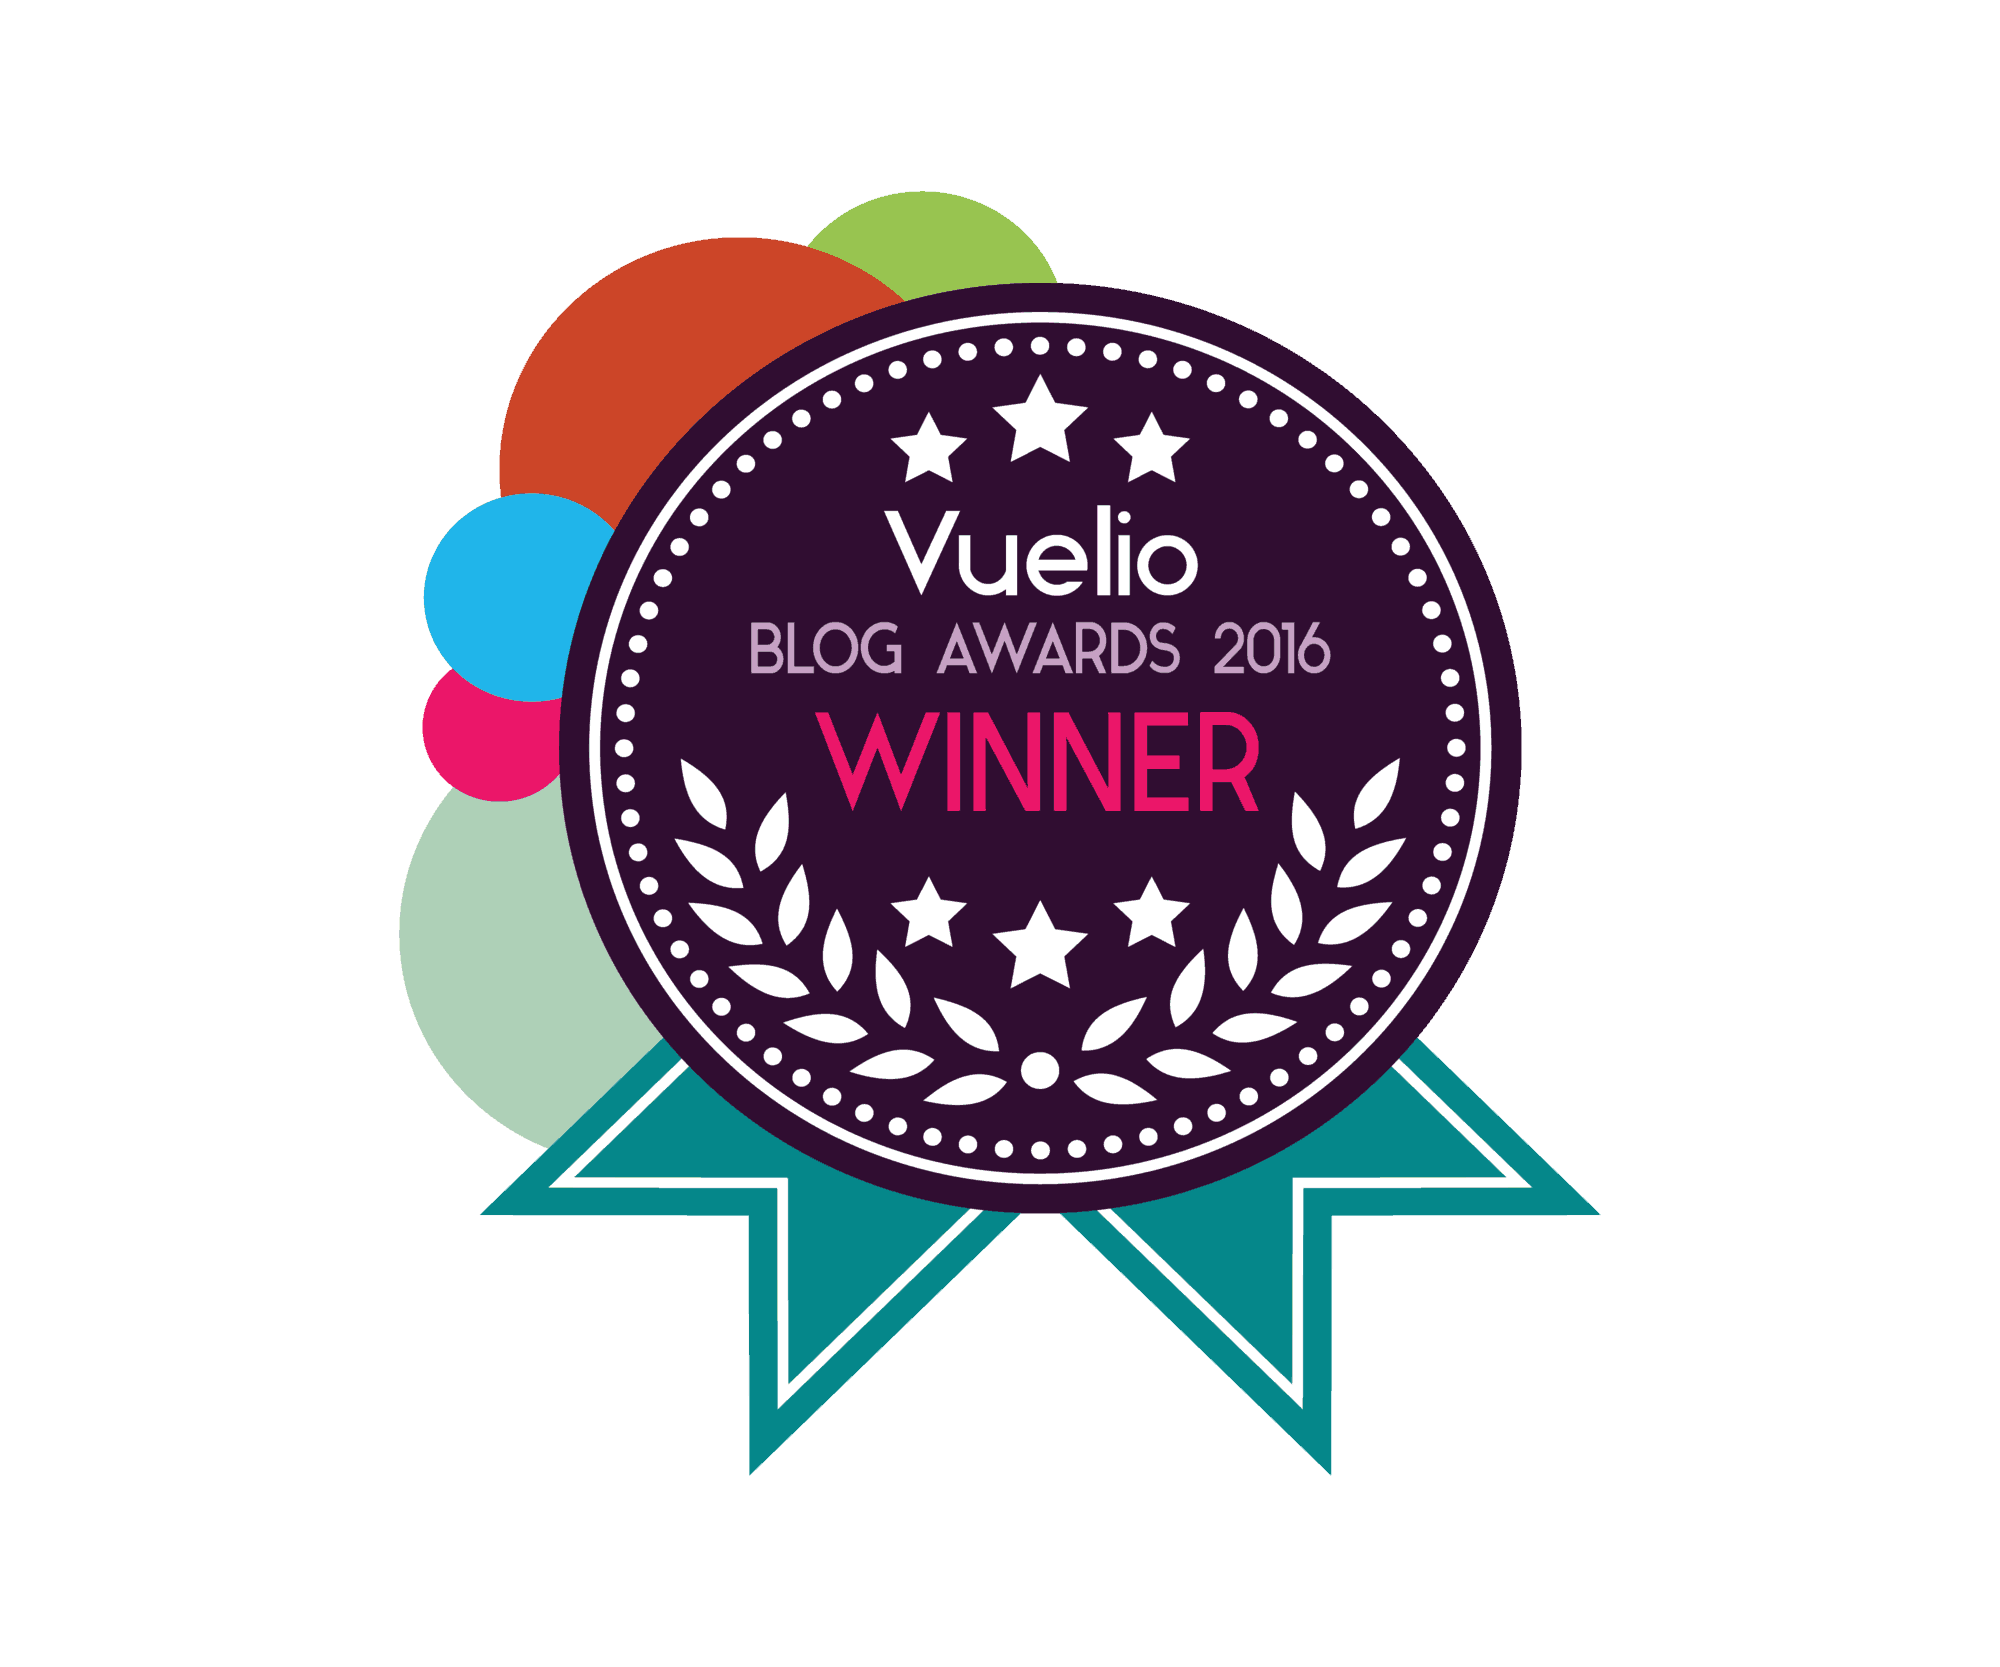 Best Travel Blog 2016 Vuelio